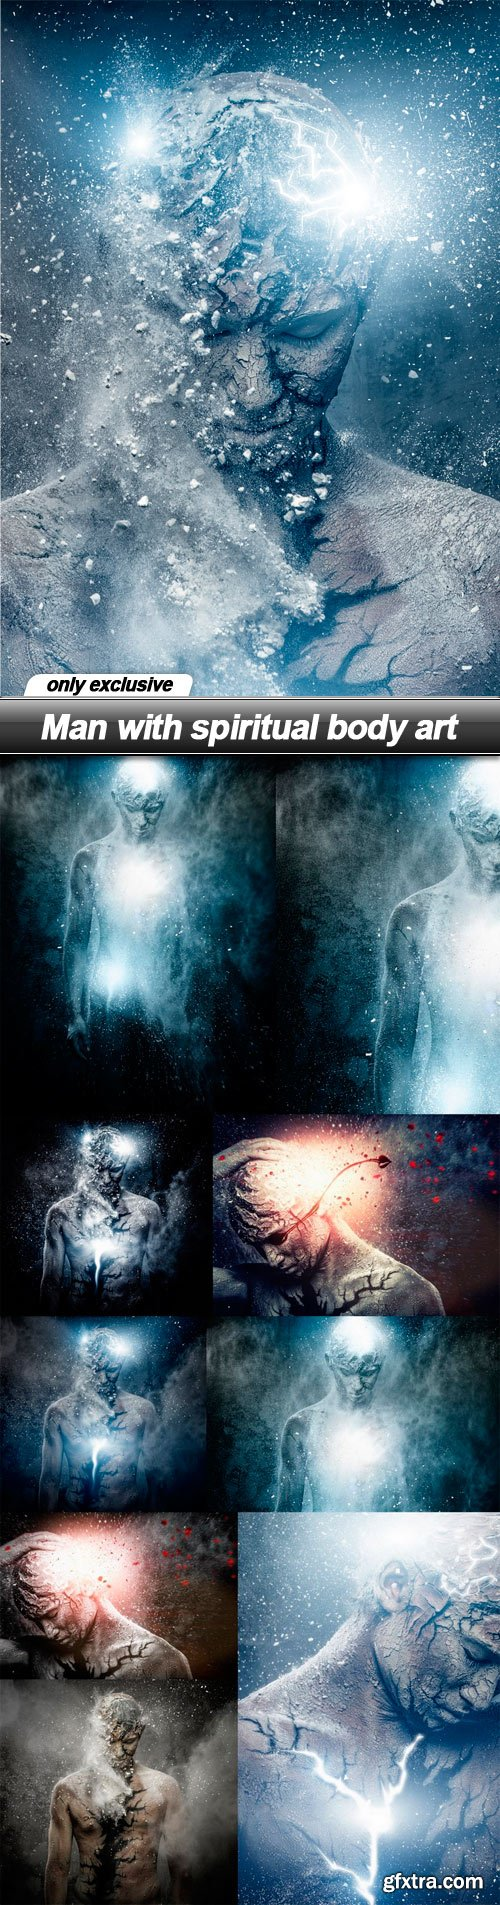 Man with spiritual body art - 10 UHQ JPEG